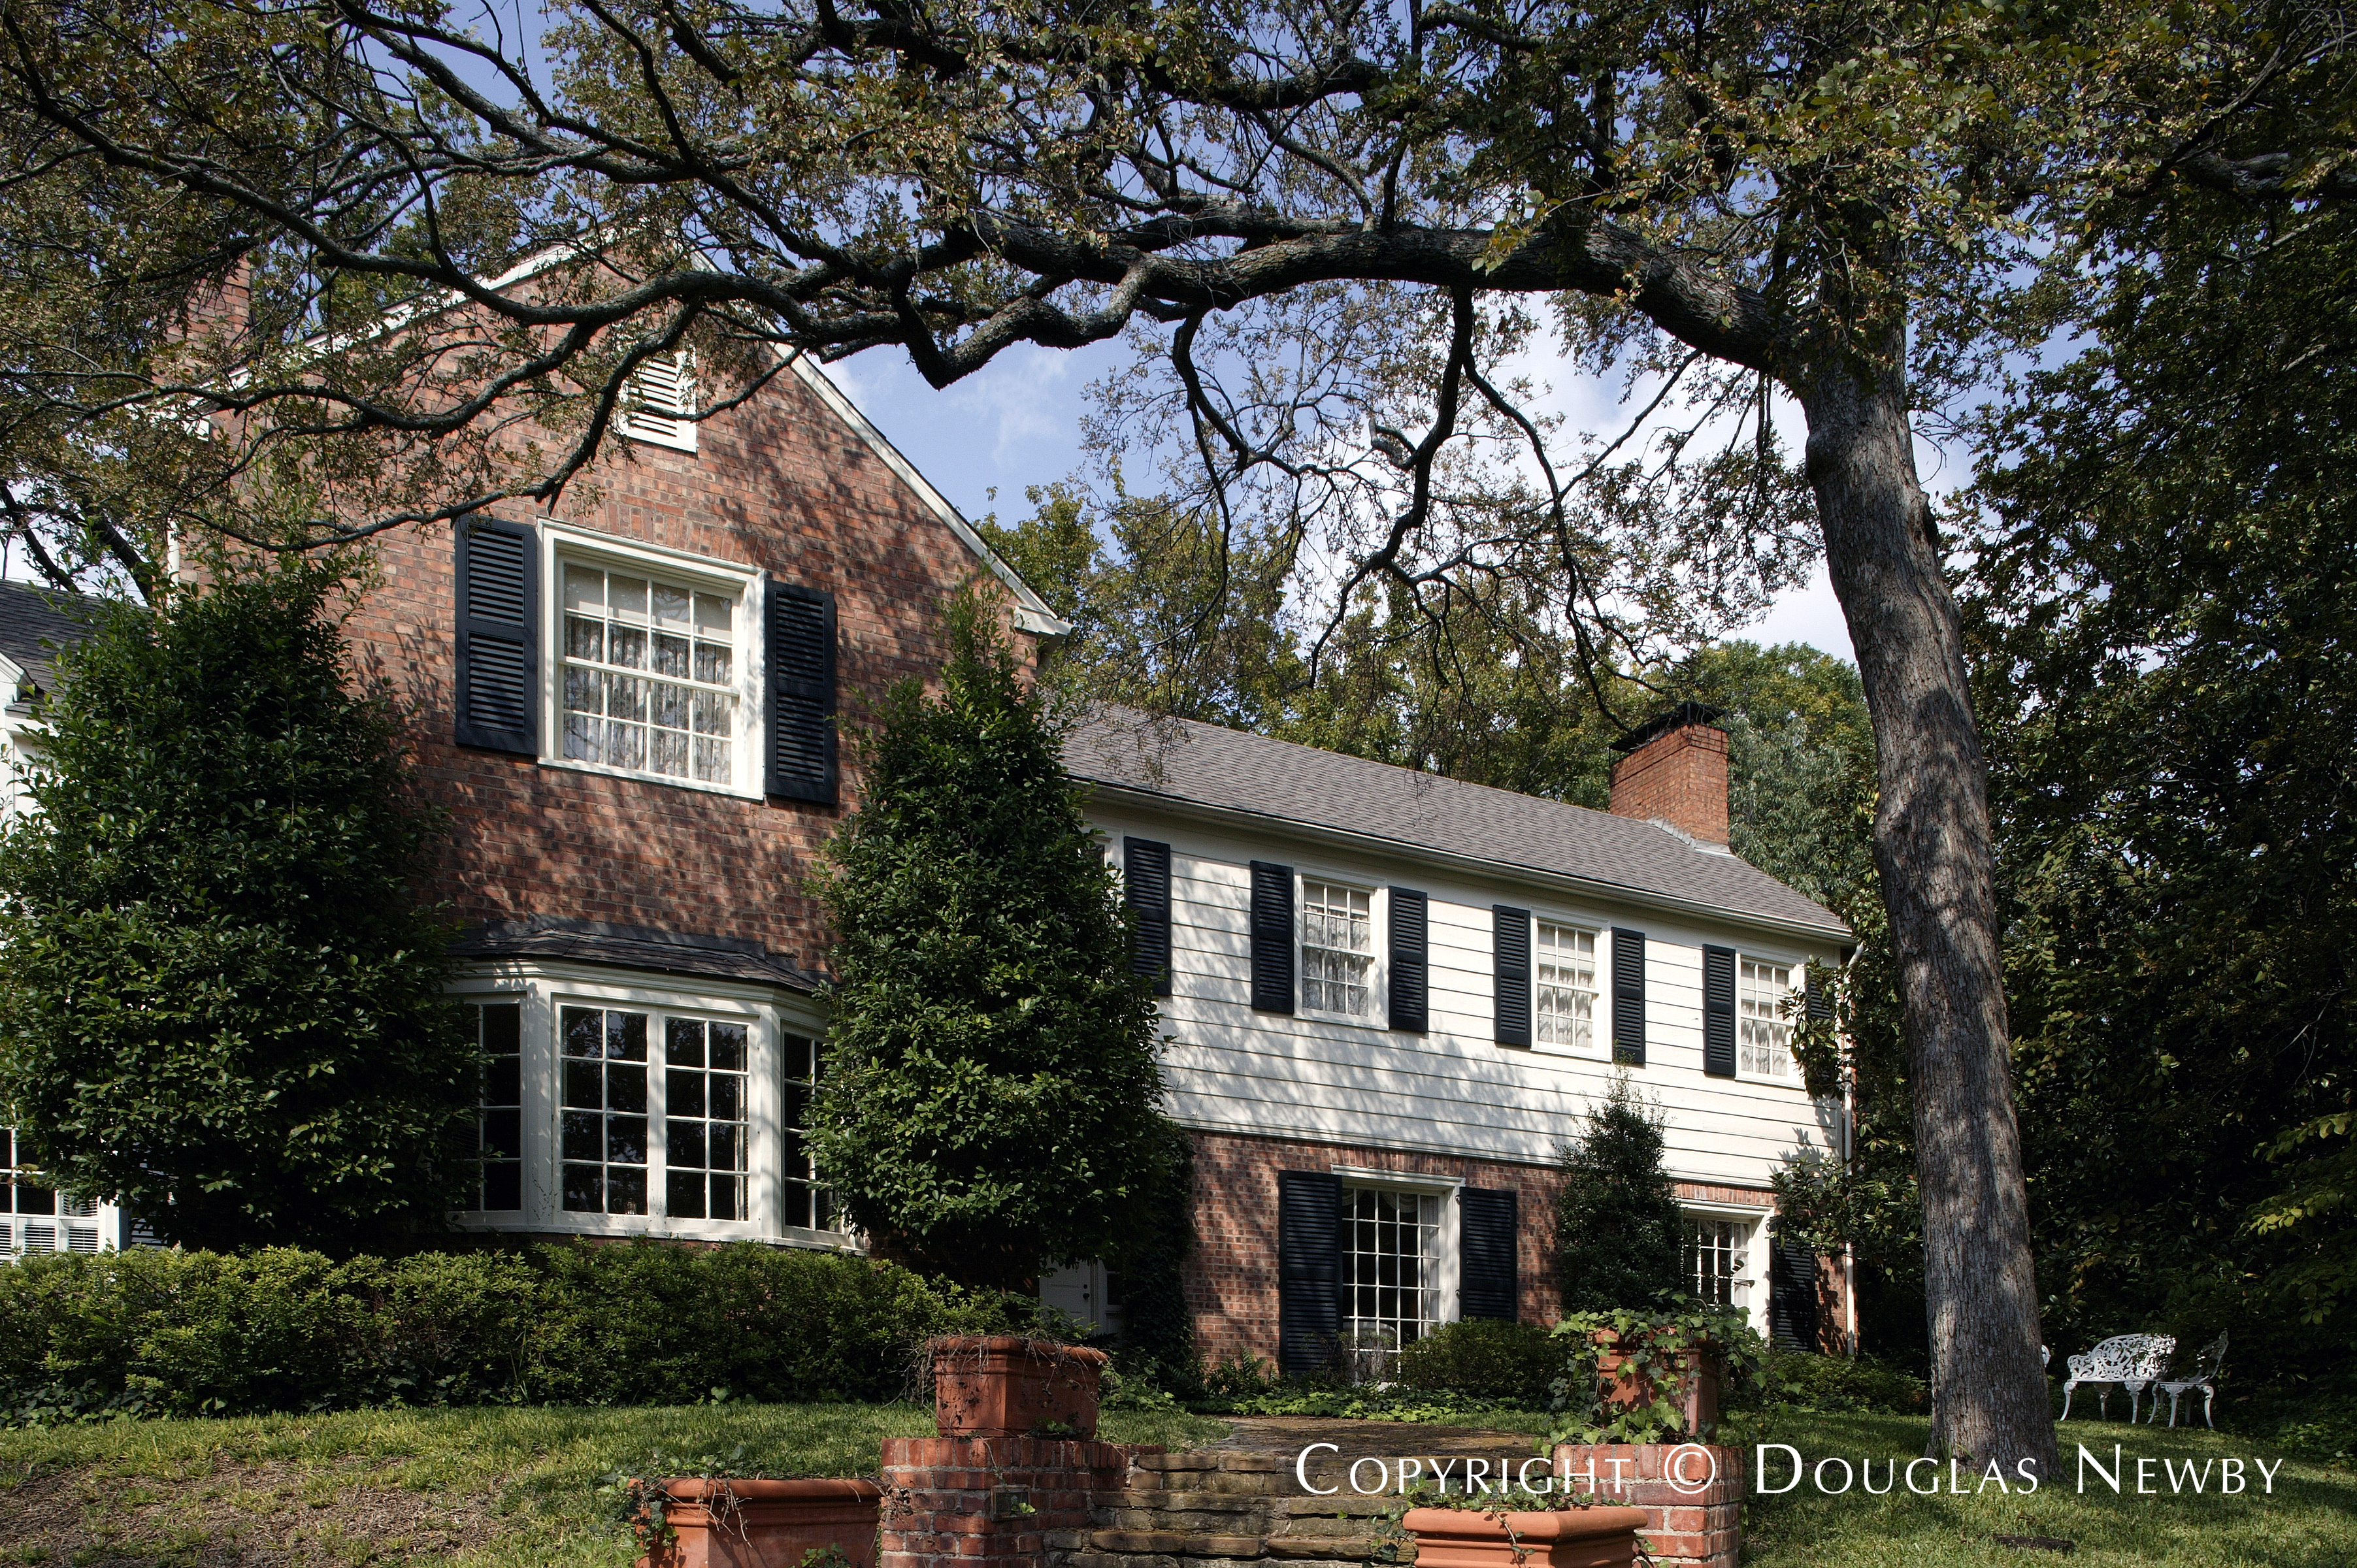 Historic Home in Bluffview Area